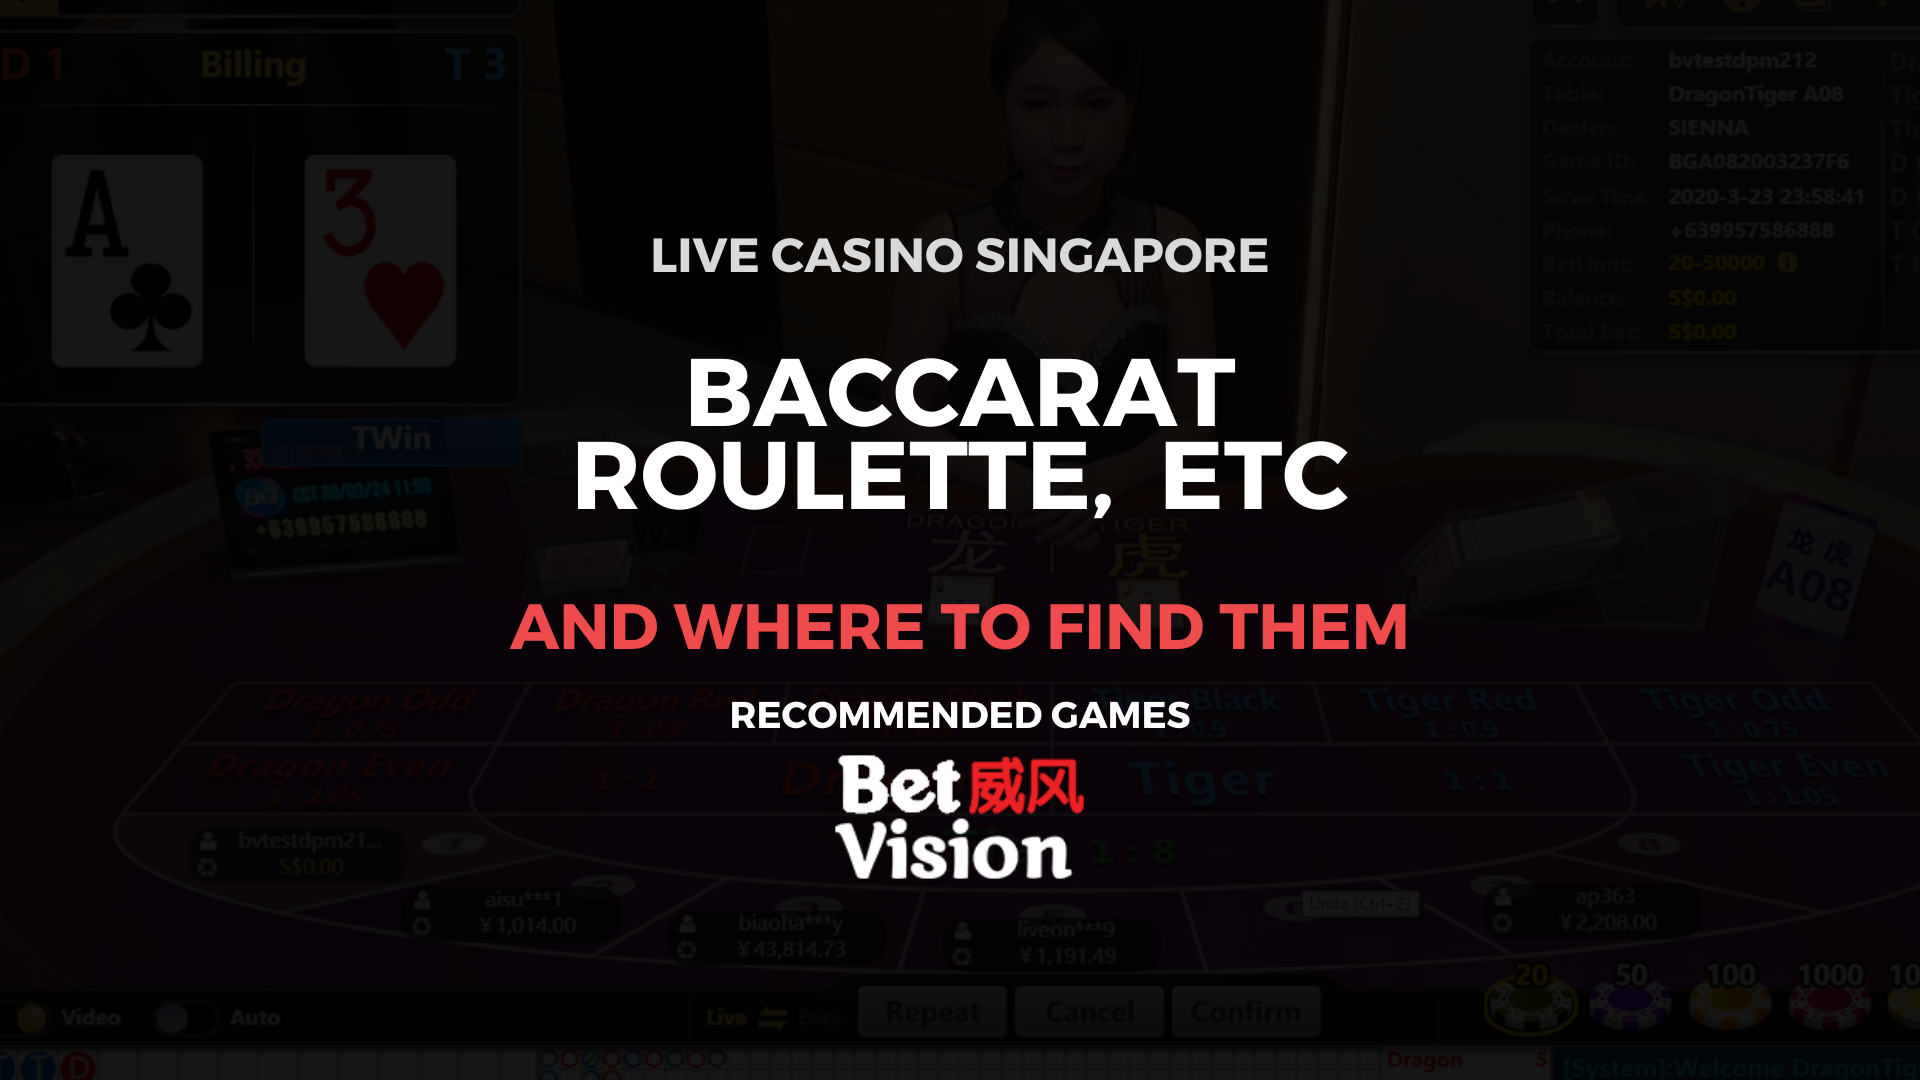 Live Casino Singapore Baccarat Roulette And Where To Find Them